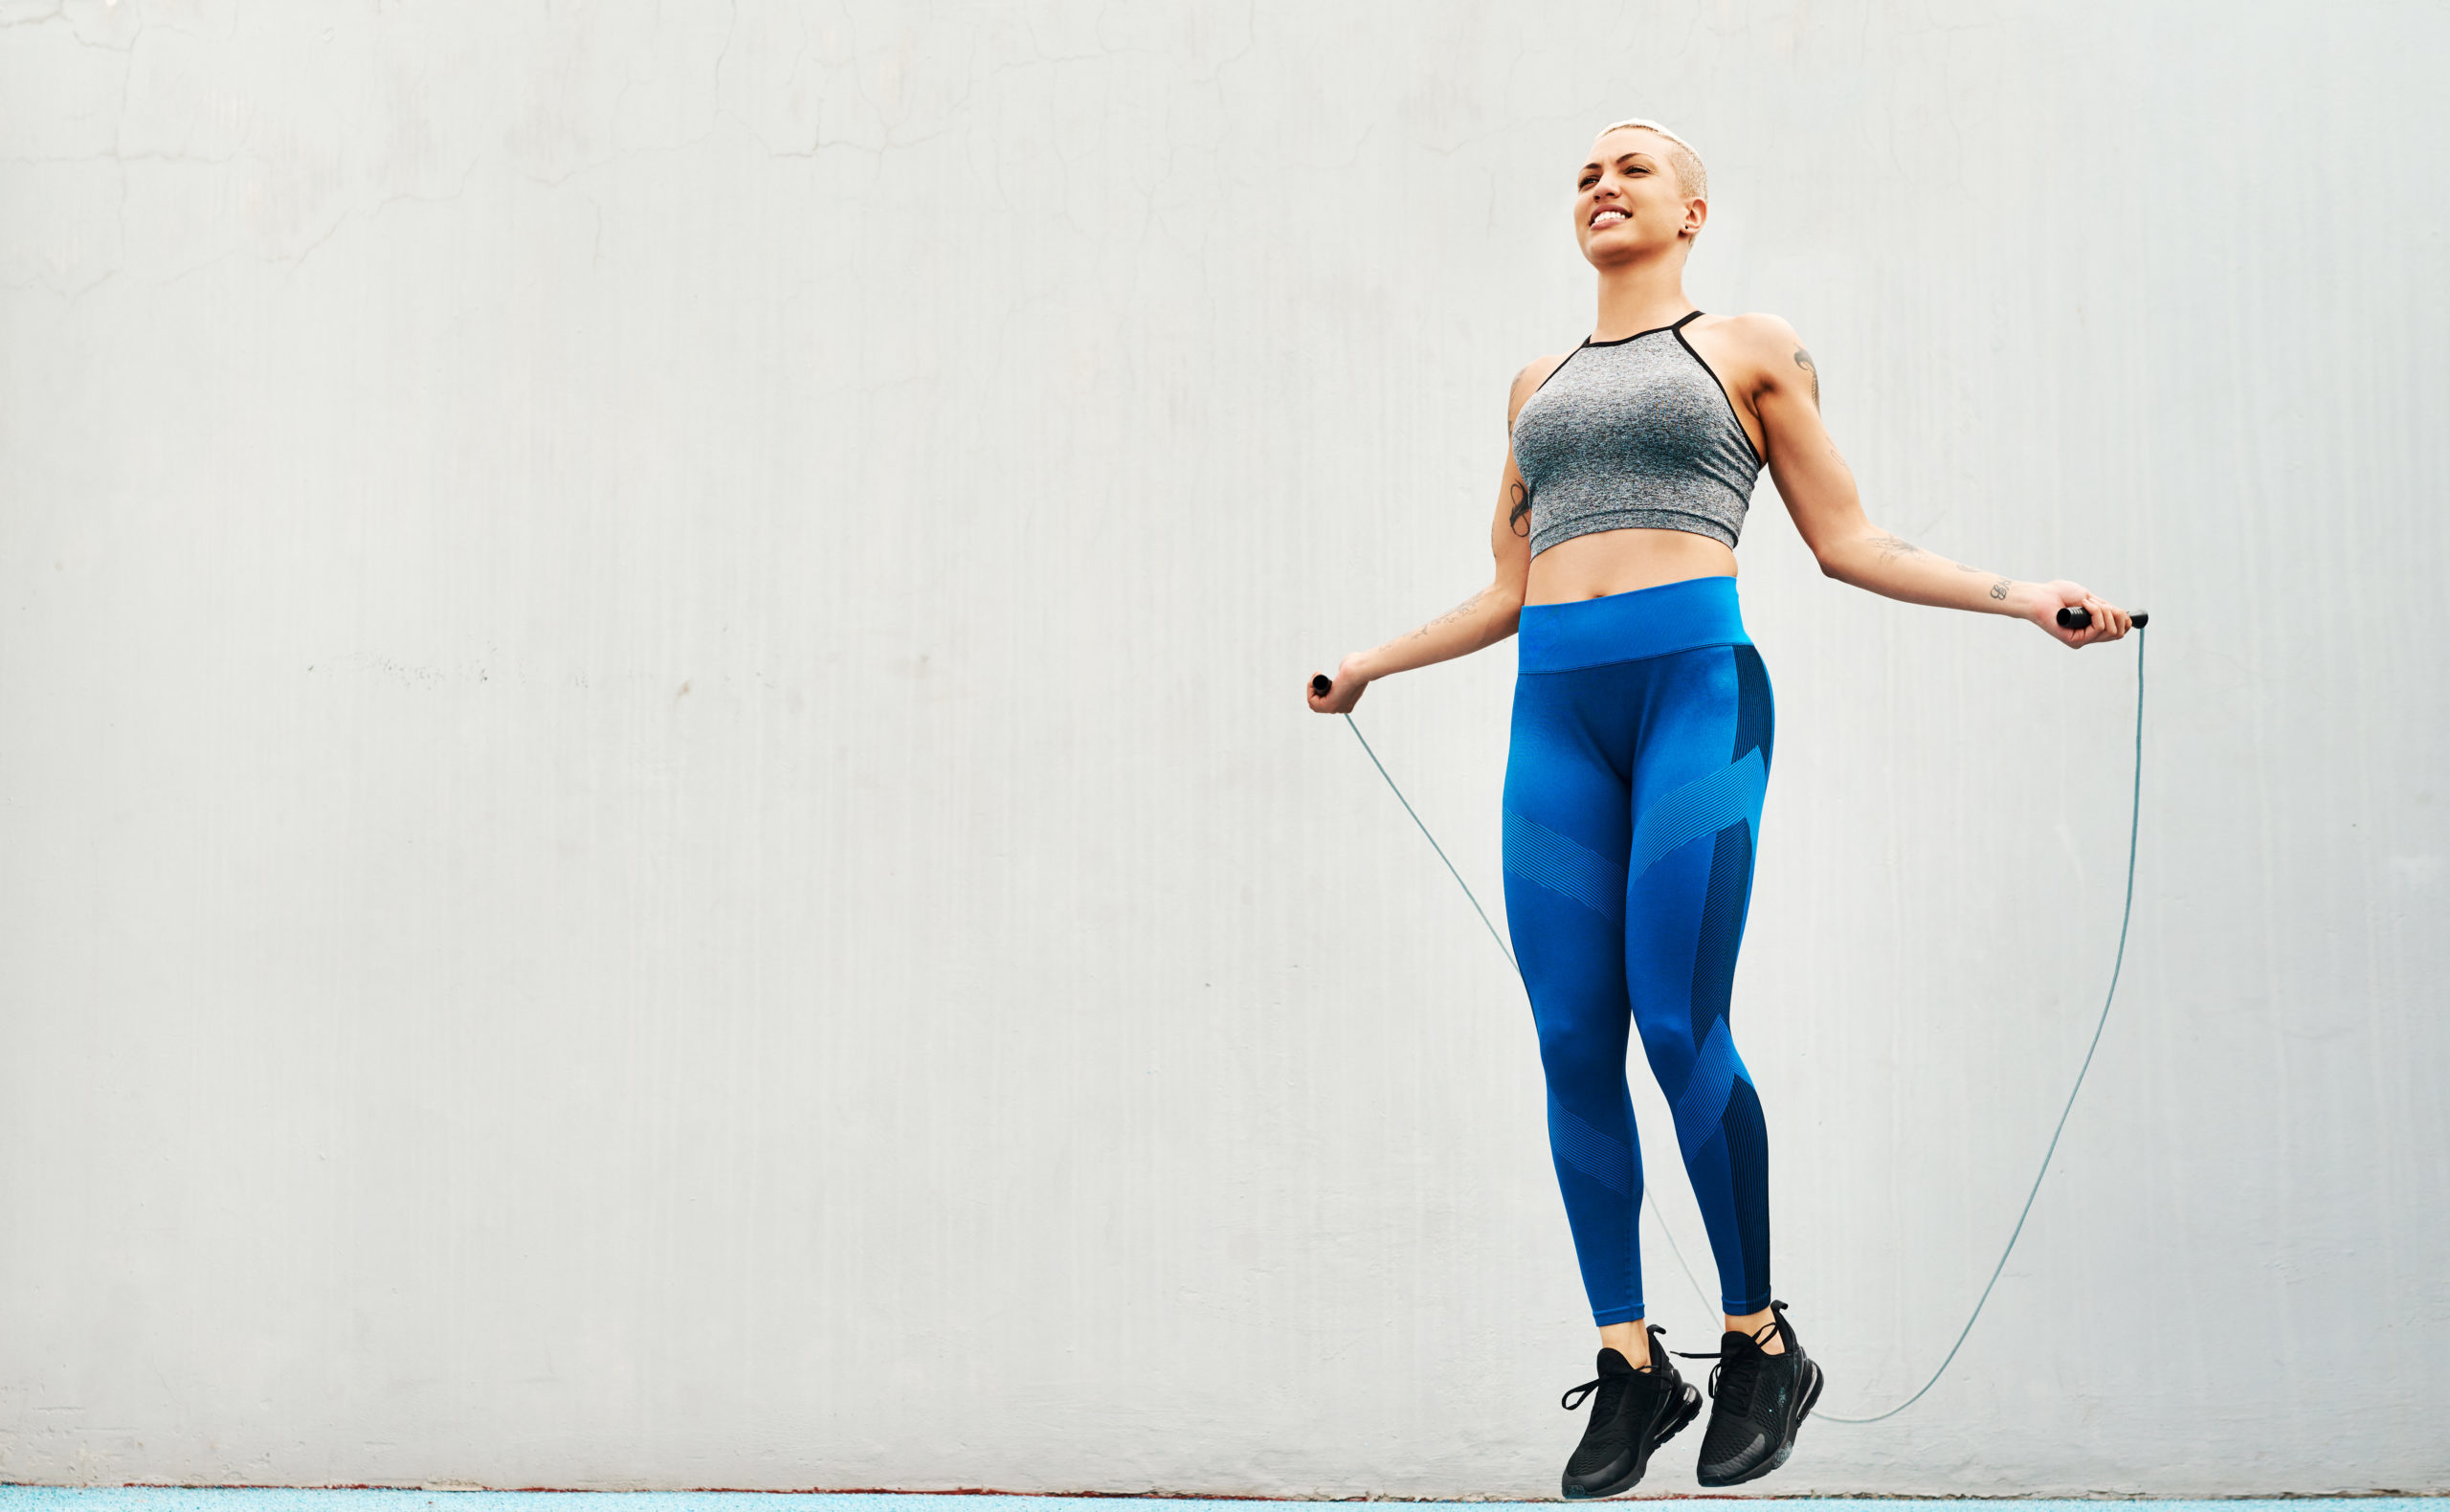 Athlete using a skipping rope